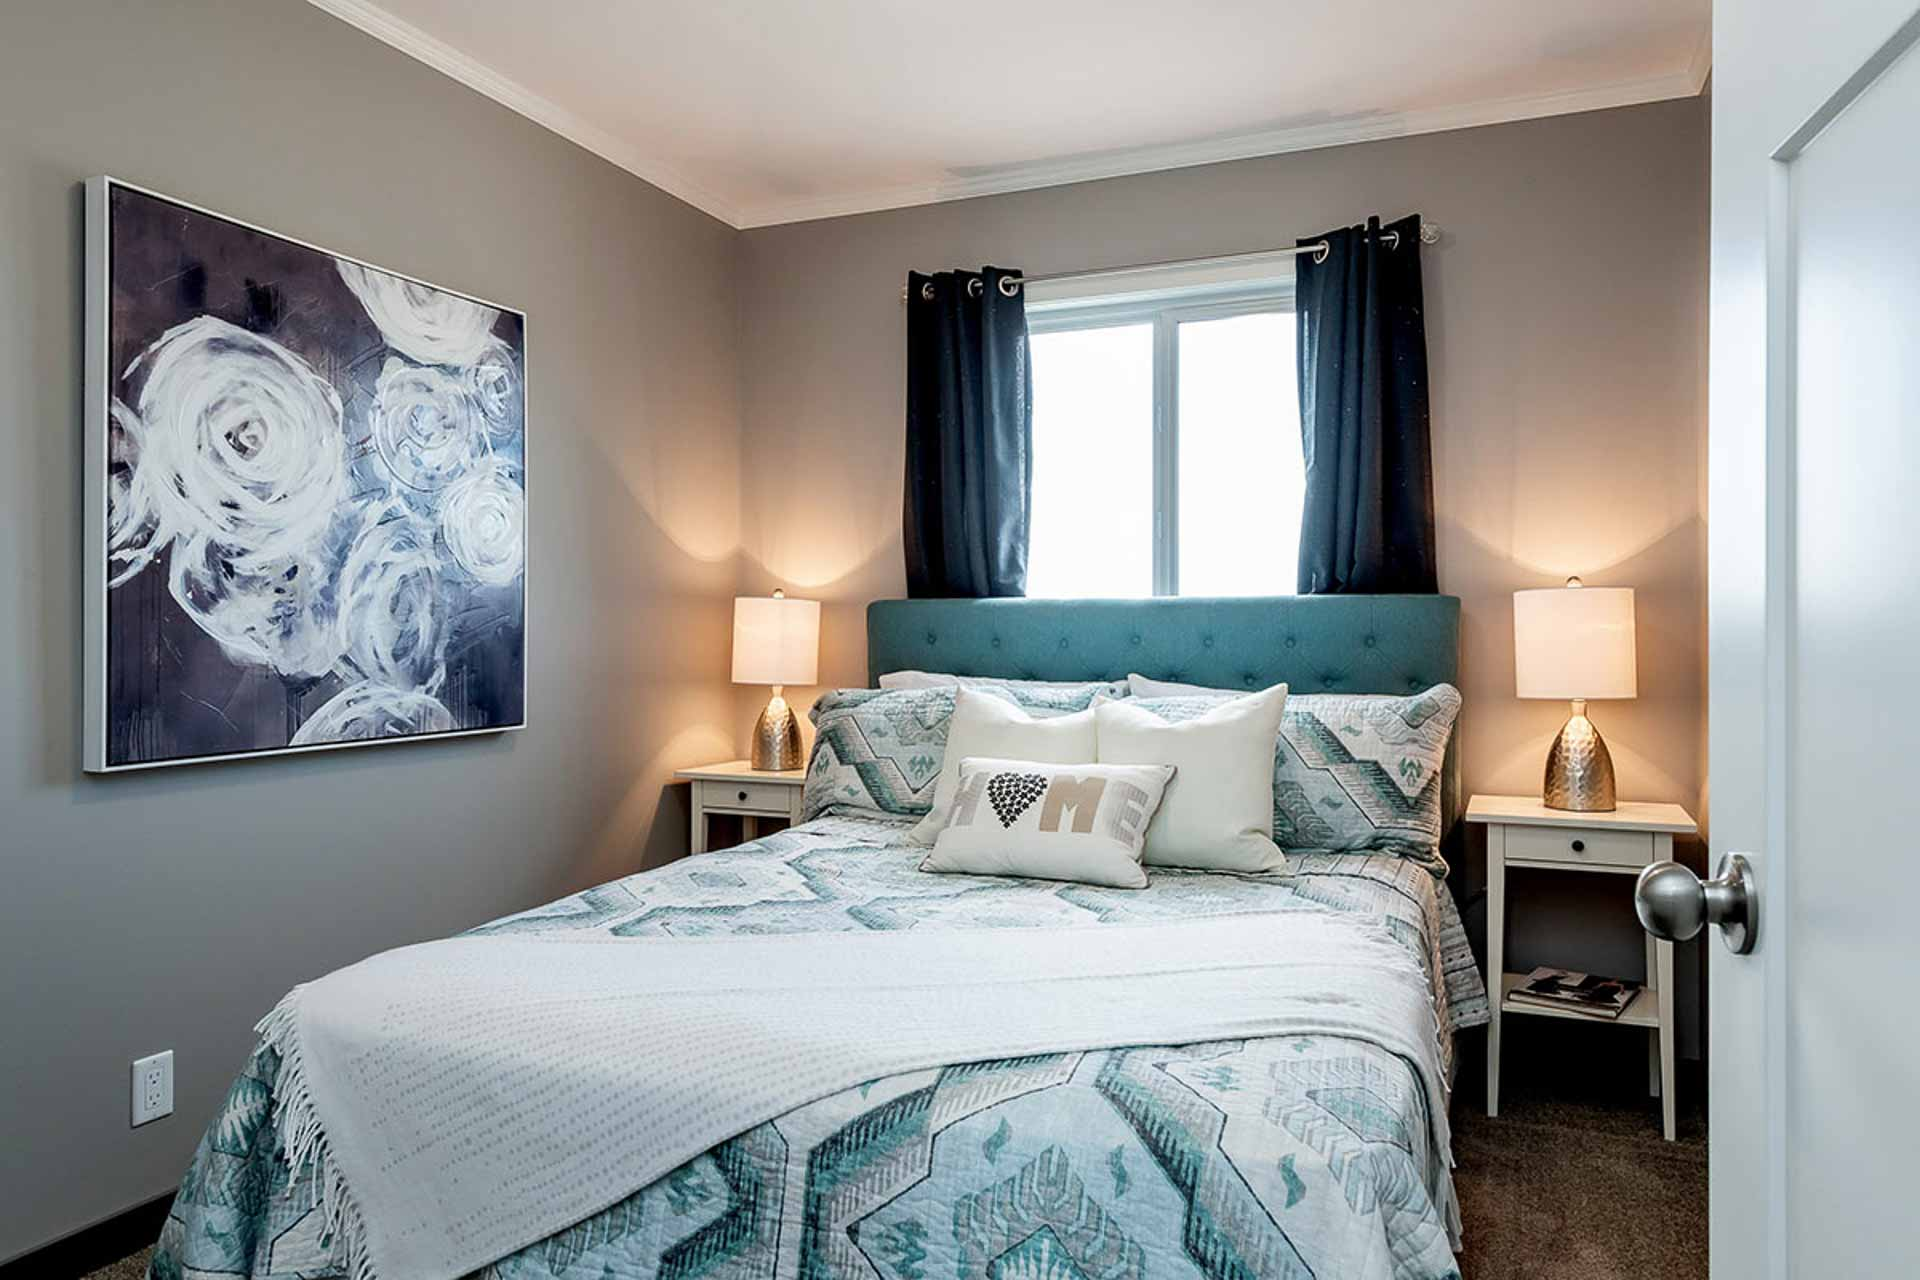 A bedroom with grey walls and a bed with a blue headboard and lots of pillows.